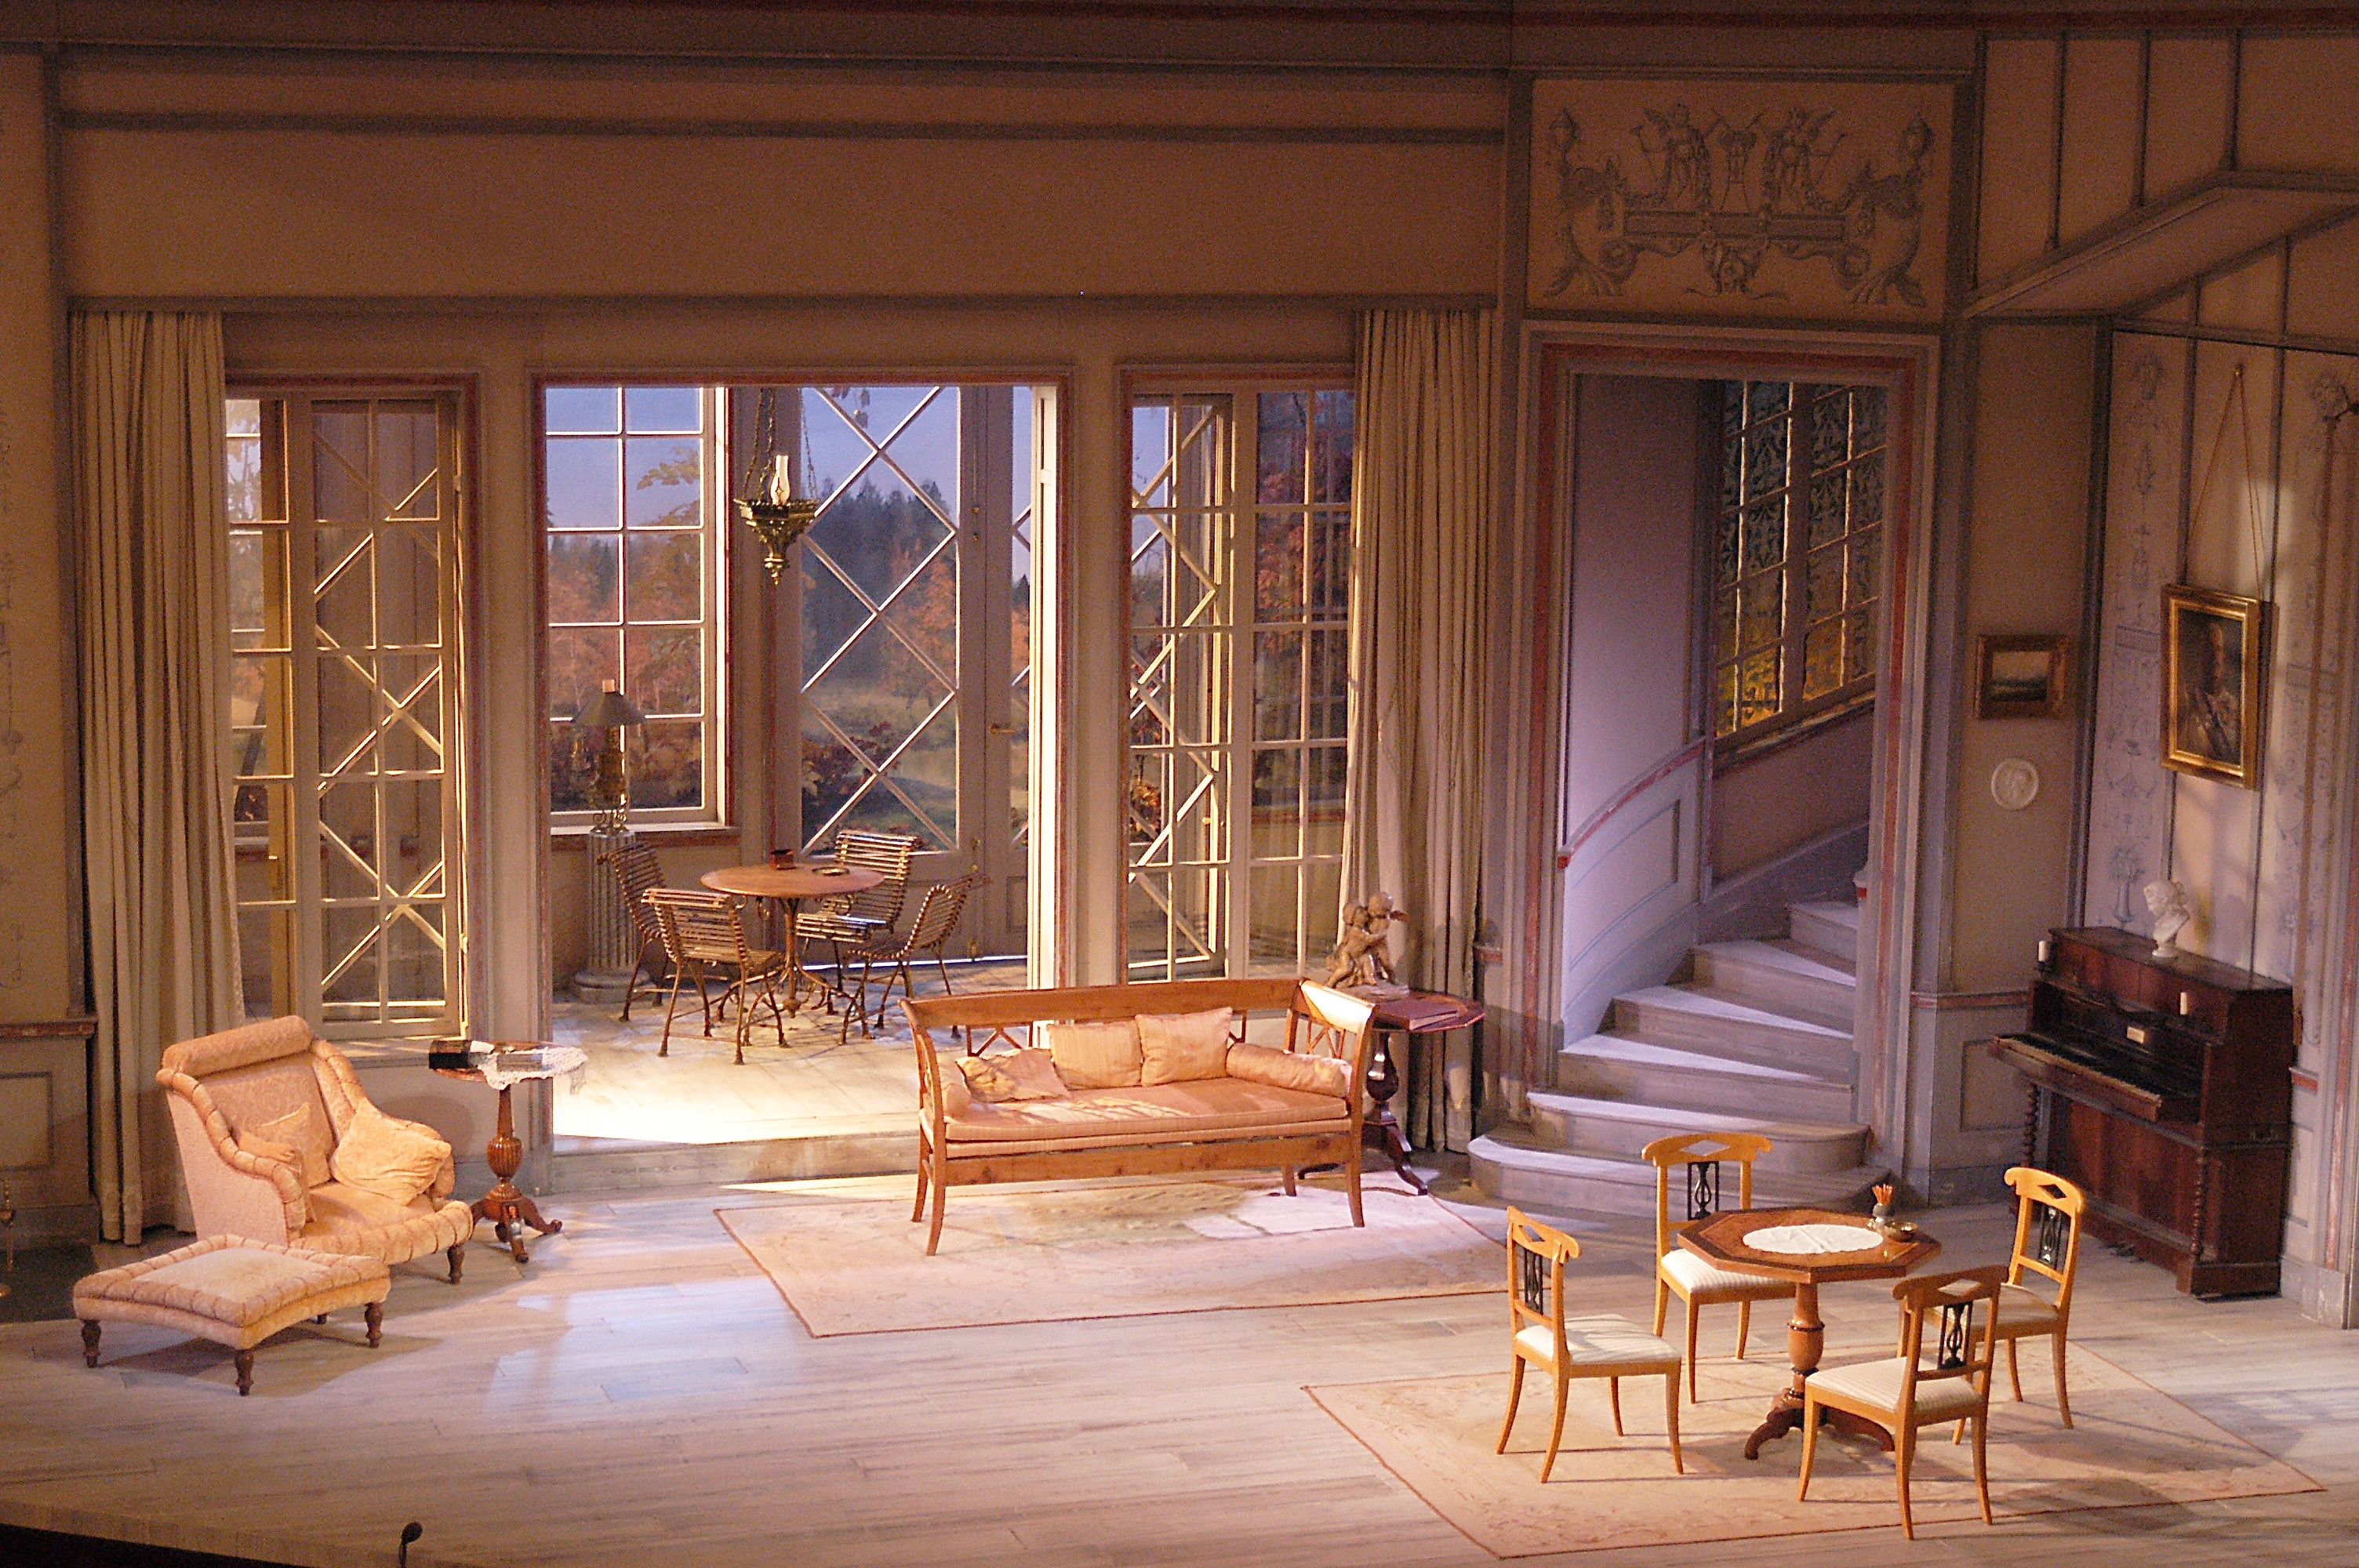 decor_spectacle_theatre-marigny_hedda-gabler_0191-1modif